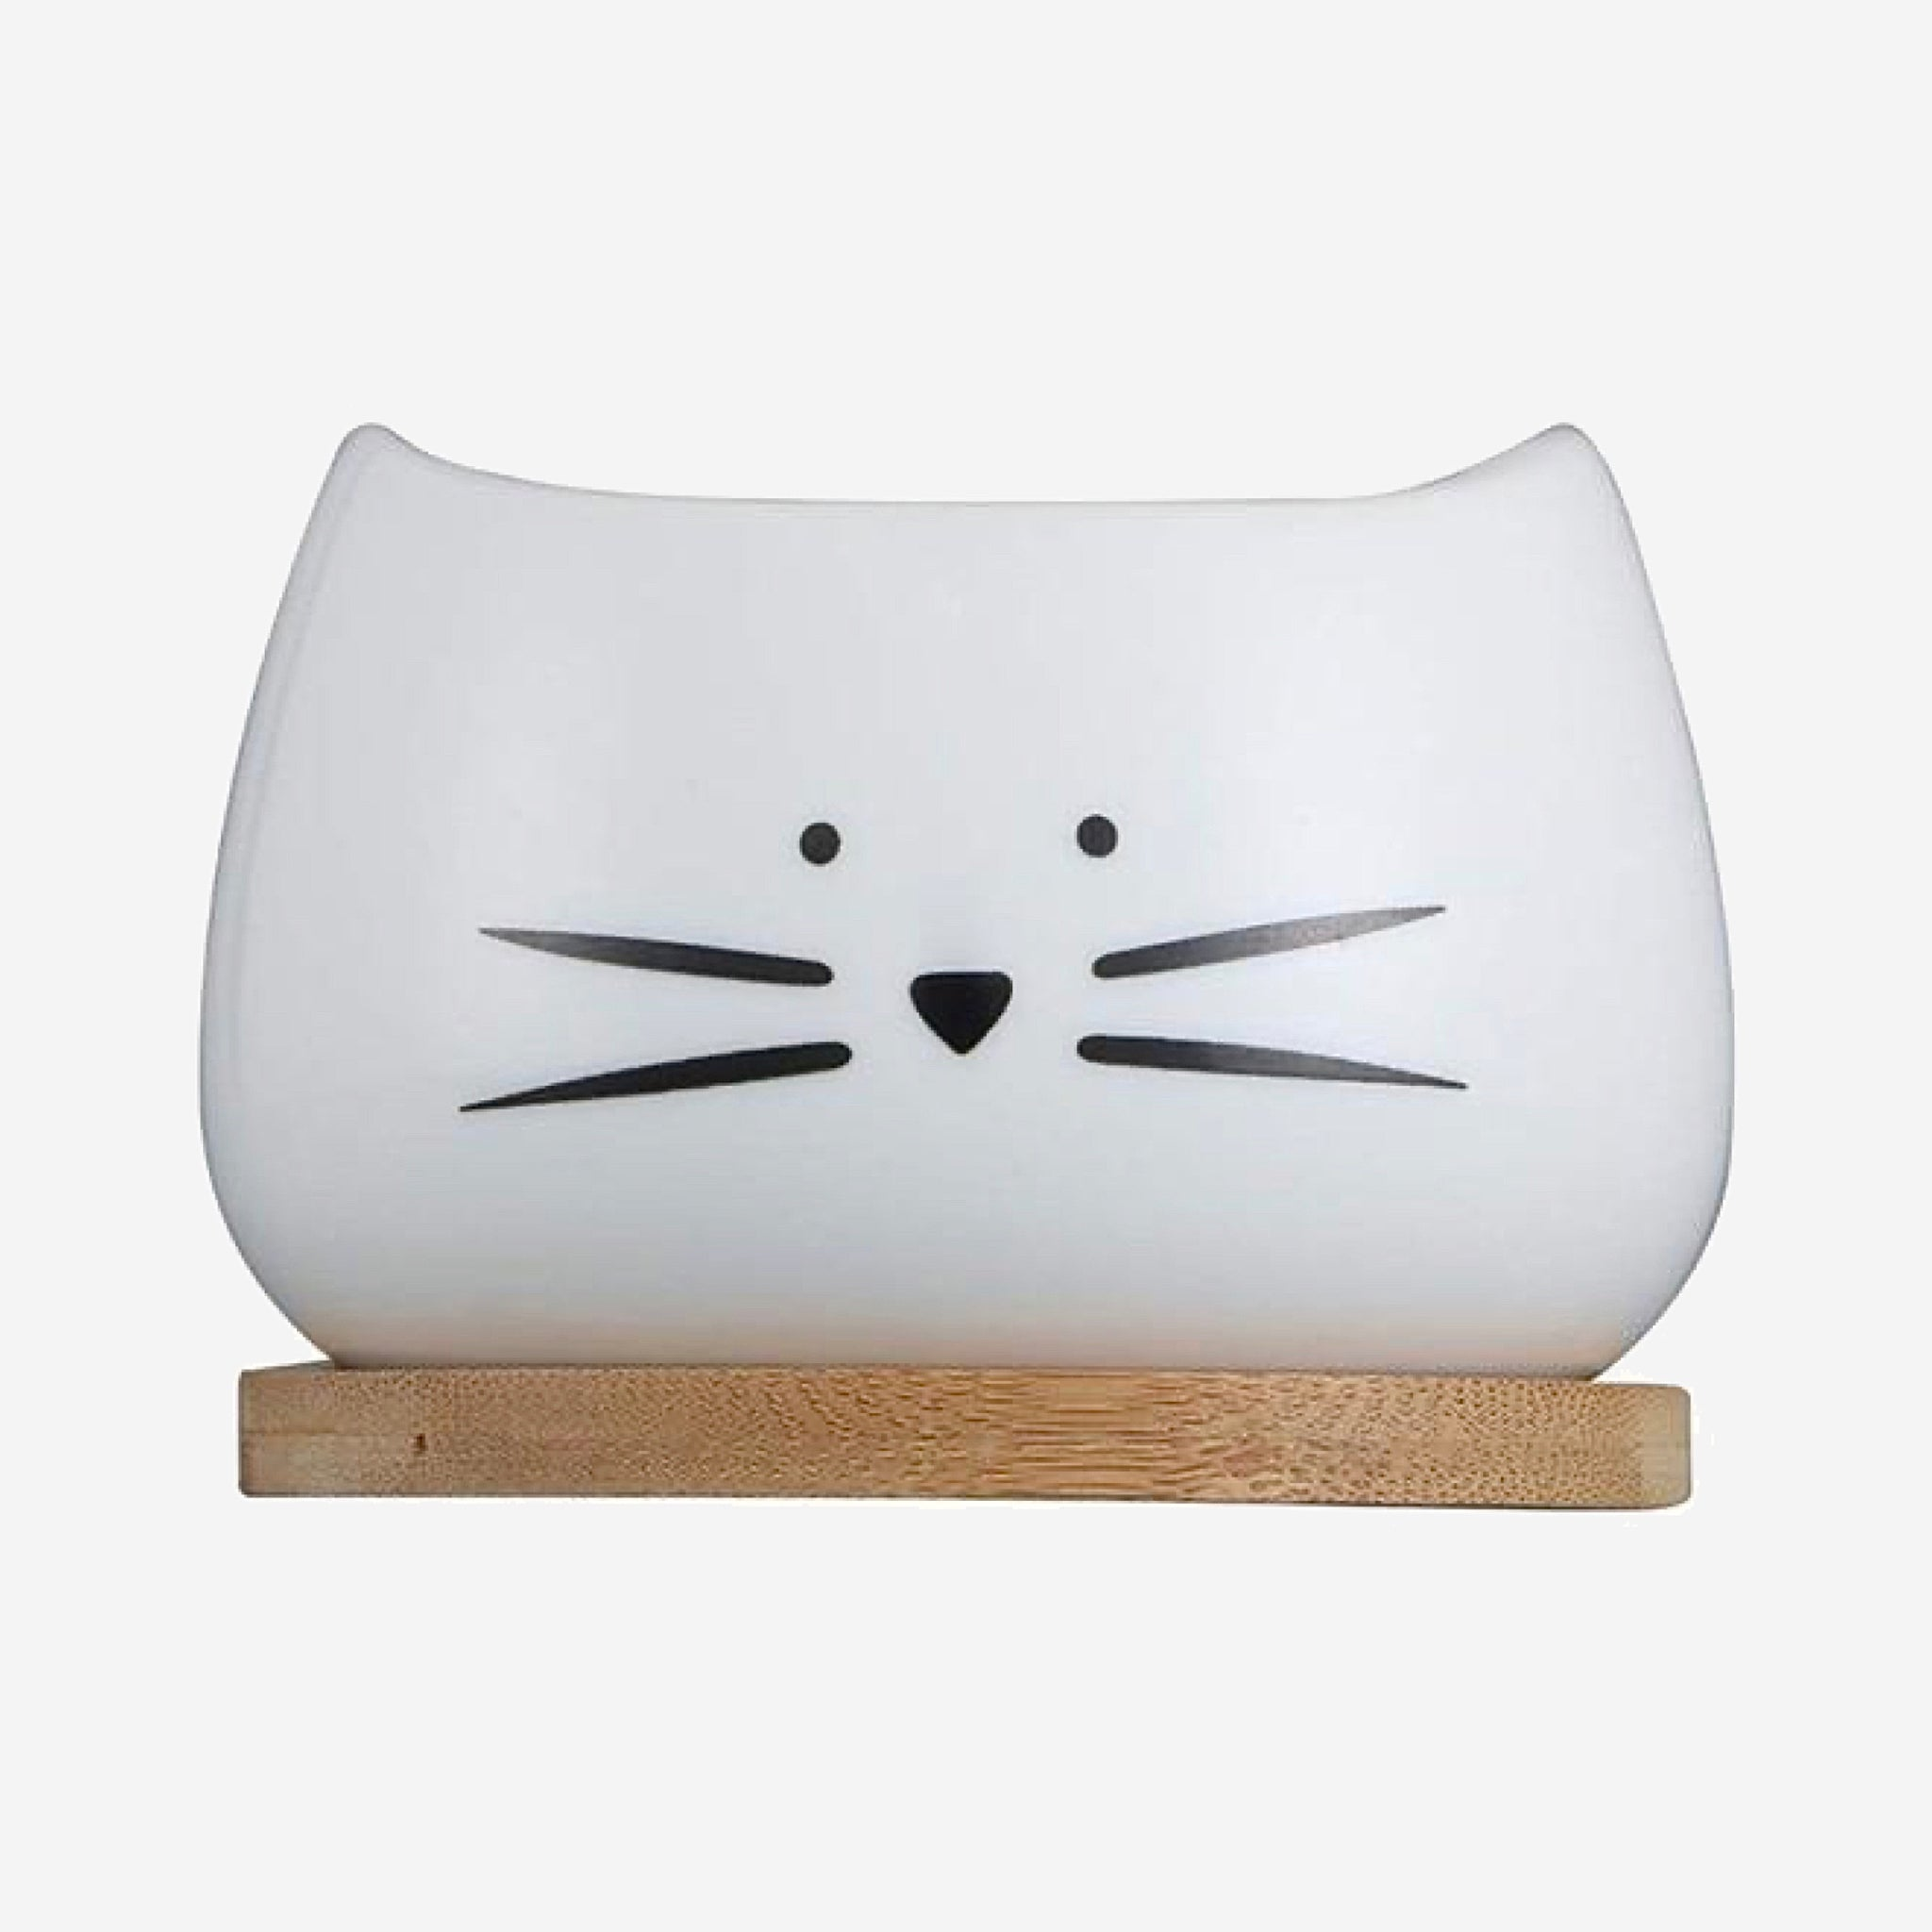 Cute Cat Face Planter Creative White Ceramic Succulent Flower Pot with Bamboo Tray Gardening Pots Trend Black